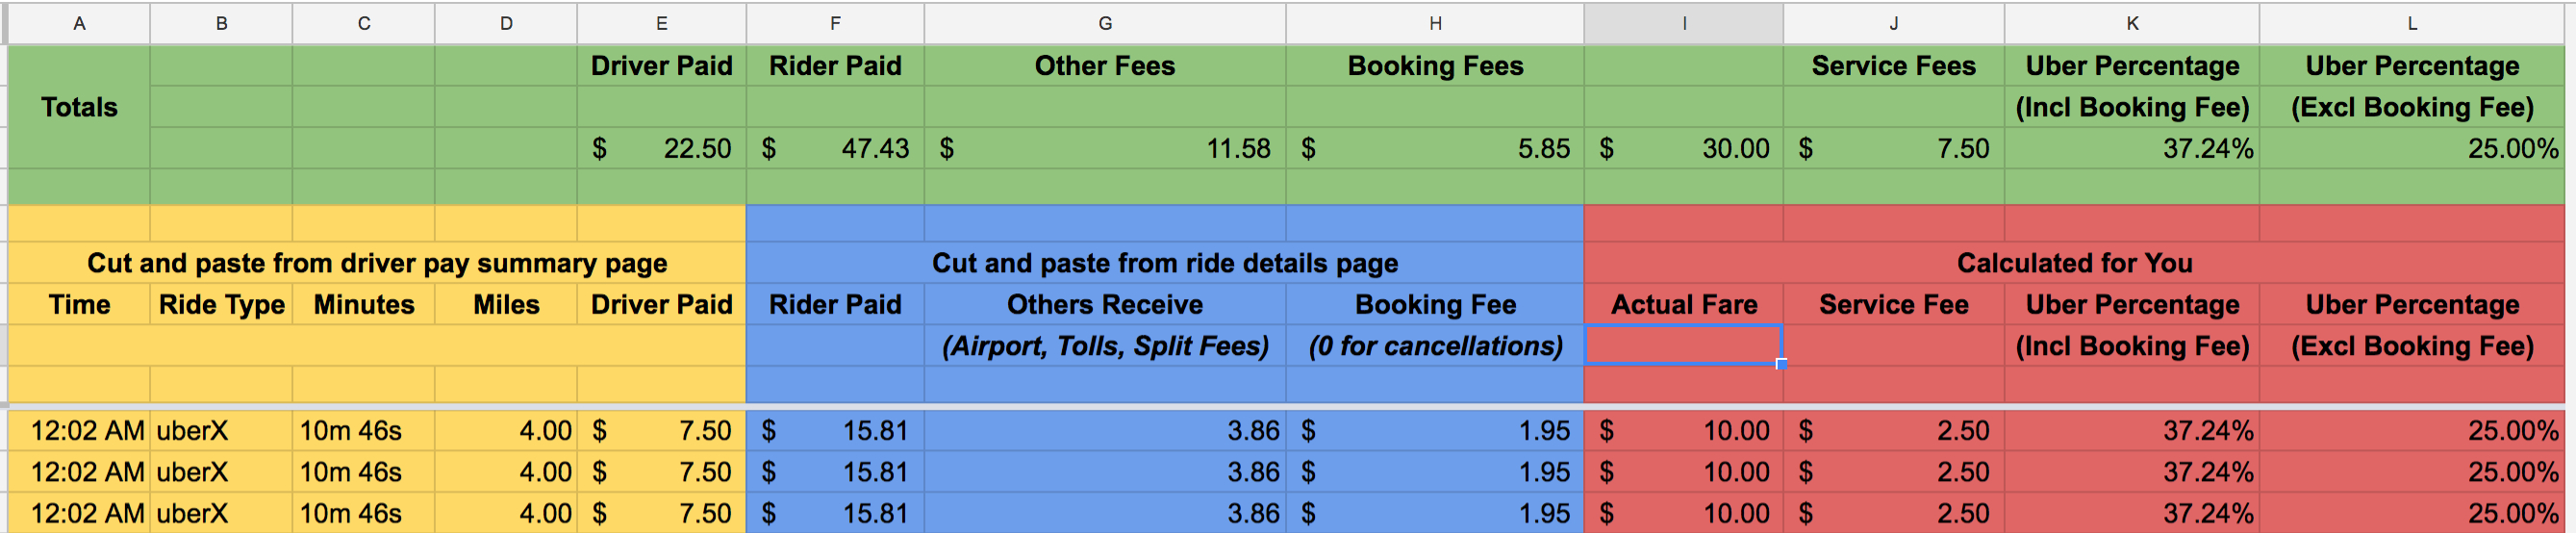 Rideshare Spreadsheet Inside How To Calculate Uber's Percentage In An Upfront Fare World